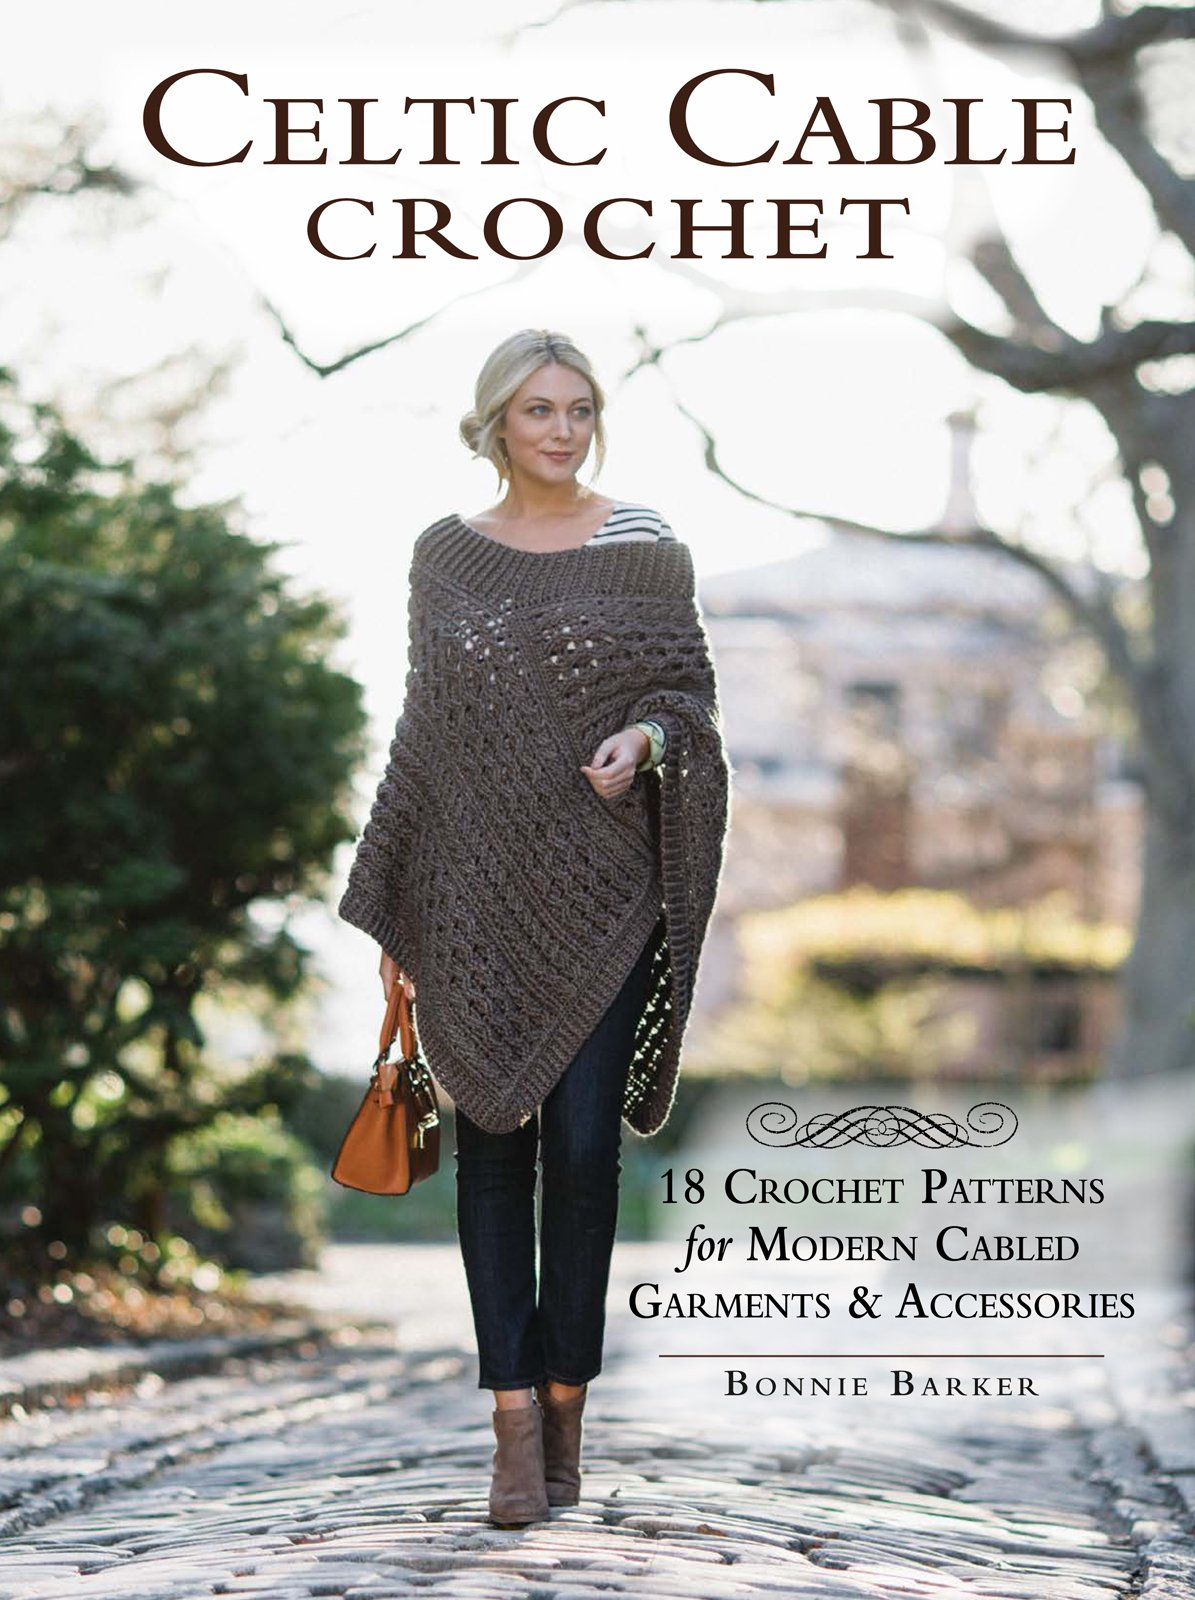 Celtic cable crochet 18 crochet patterns for modern cabled celtic cable crochet 18 crochet patterns for modern cabled garments accessories bonnie barker 9781632503534 amazon books fandeluxe Choice Image